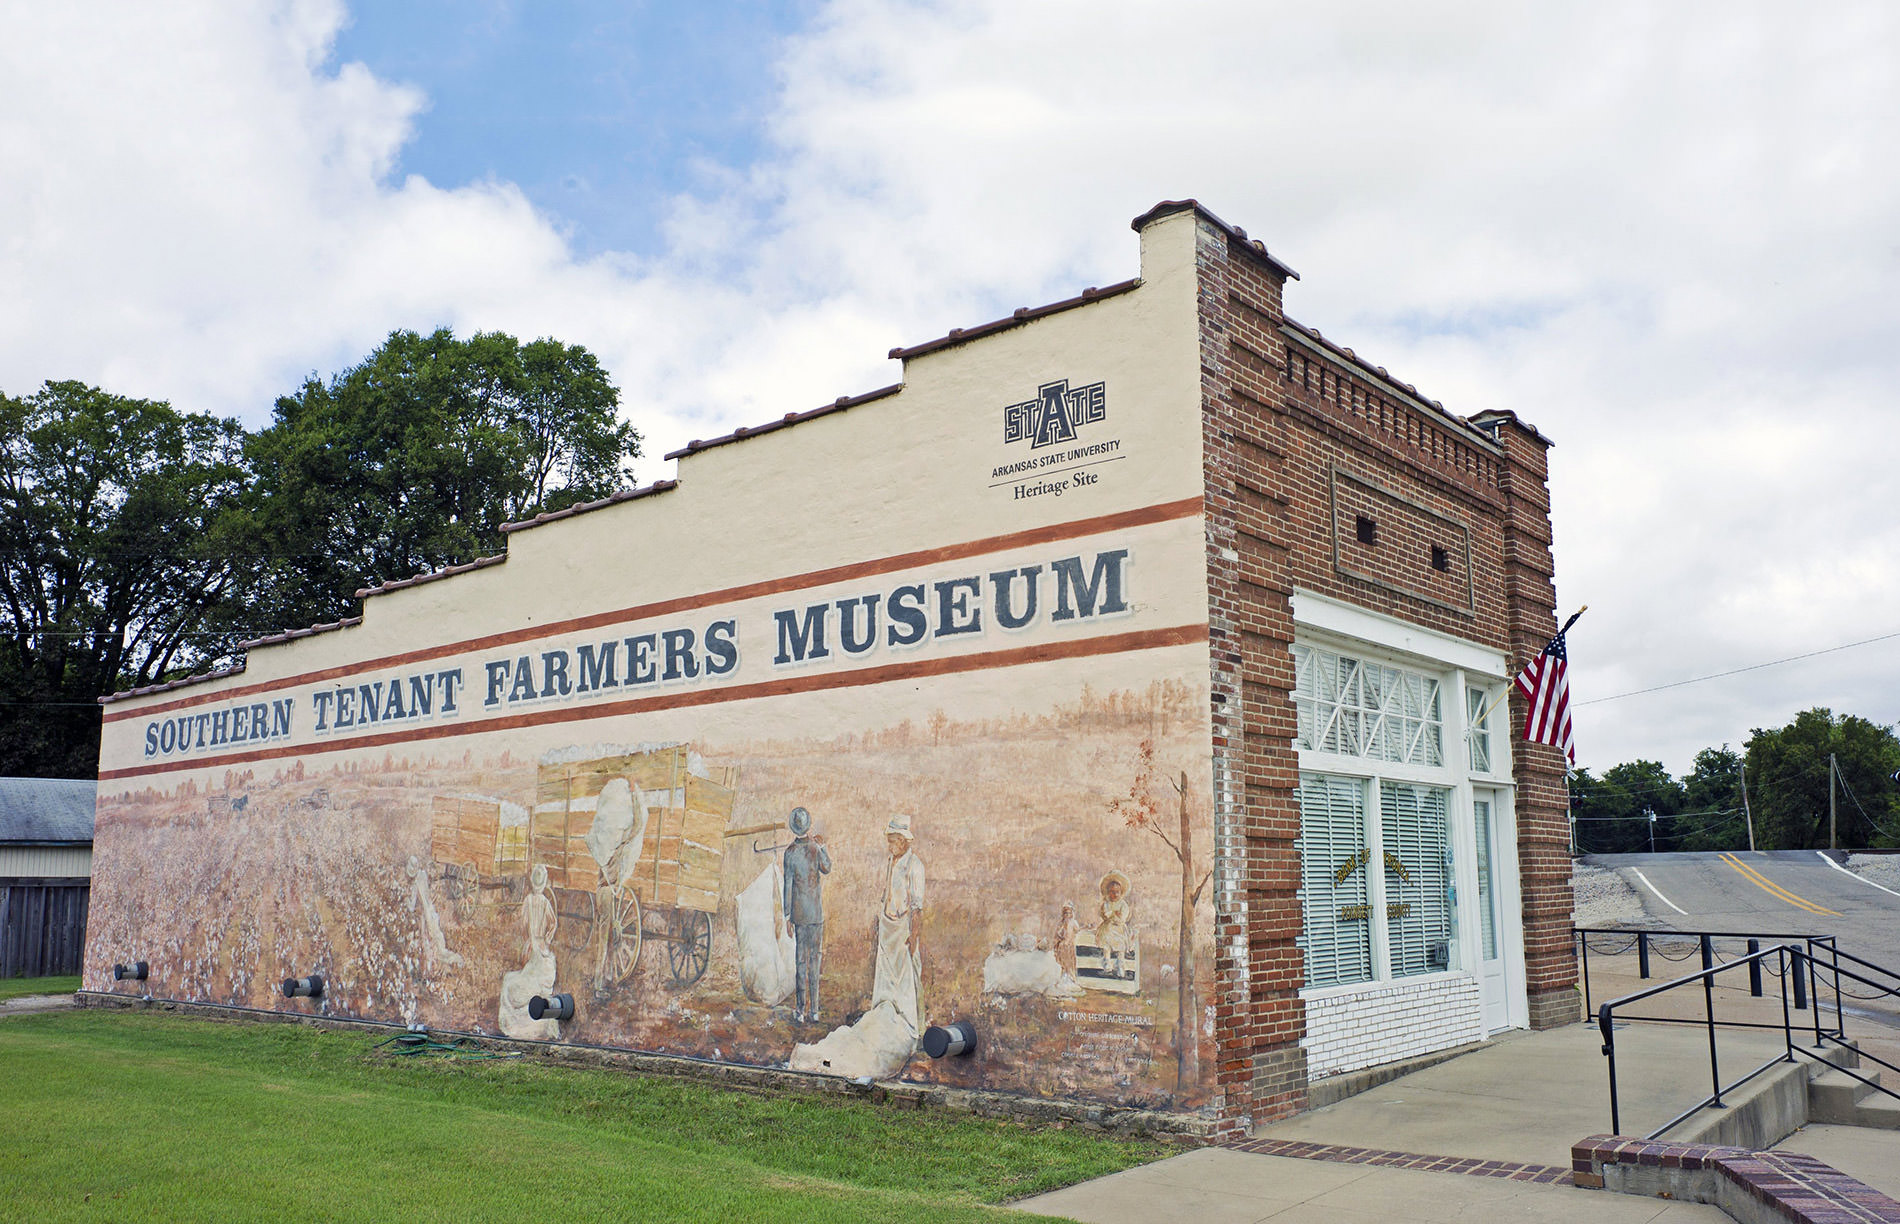 A mural depicting the cotton heritage of east Arkansas was painted on the south wall of the Southern Tenant Farmers Museum in Tyronza by Connie Watkins of Paragould.